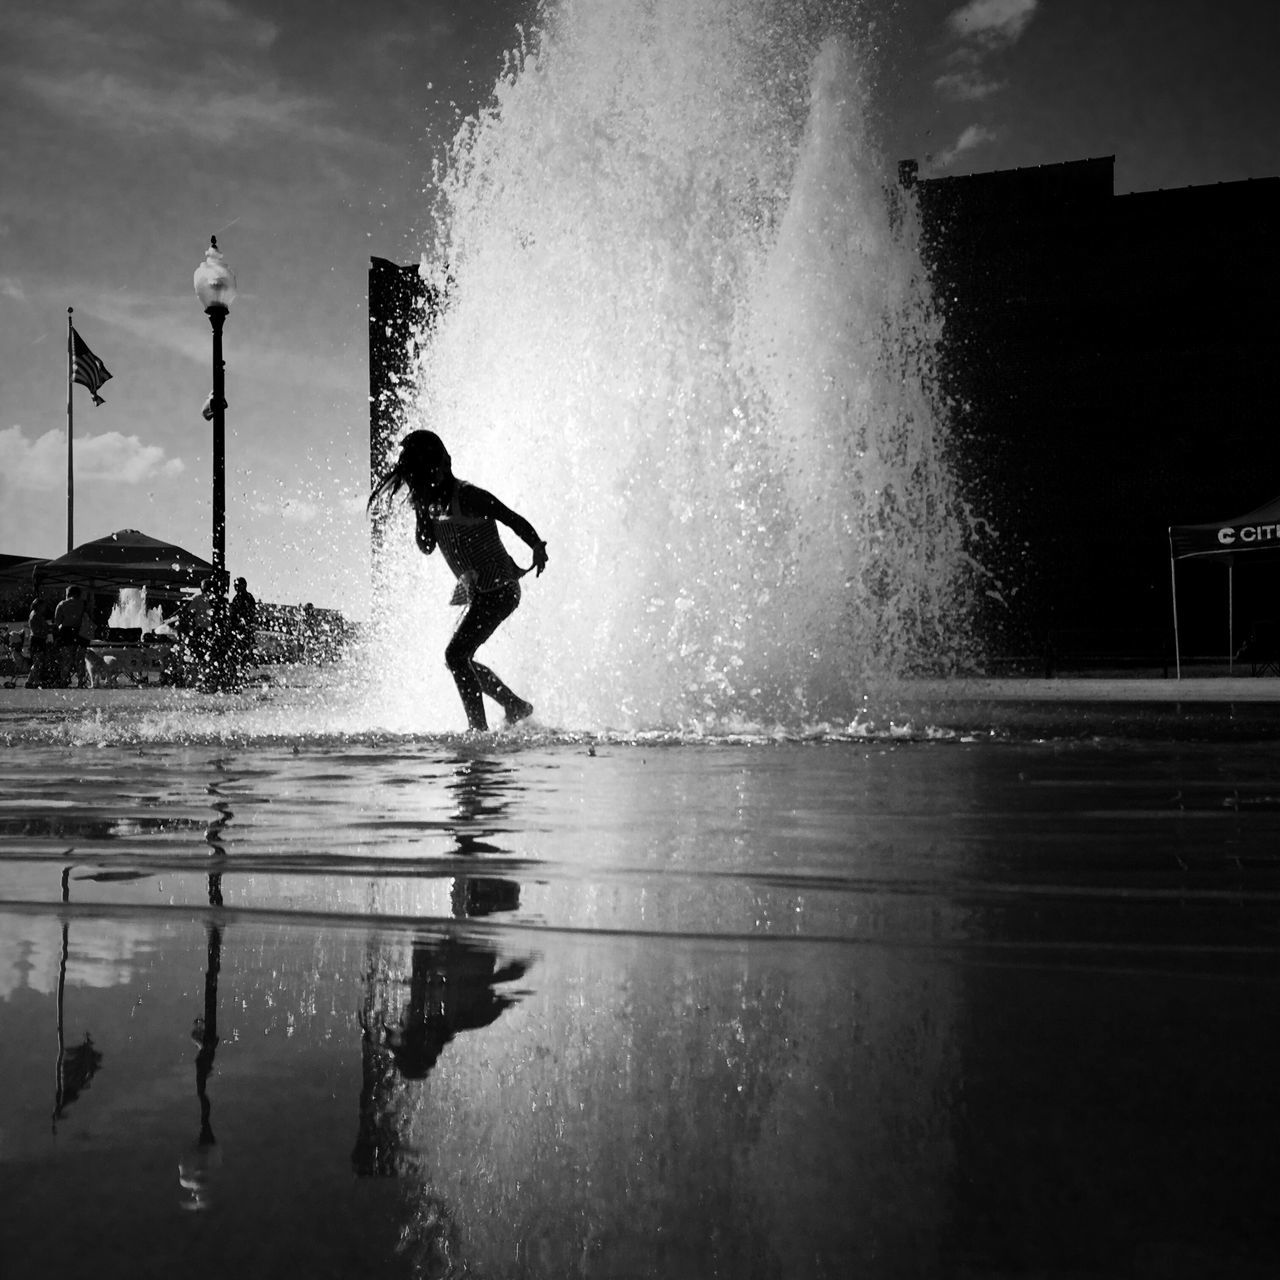 Somerset,KY. 2016 Water Motion Enjoyment Splashing Playing Leisure Activity Wet Lifestyles Fountain Spraying Fun Rain Summer Season  Refreshment Childhood City Life Playful Vacations Enjoying Monochrome Photography